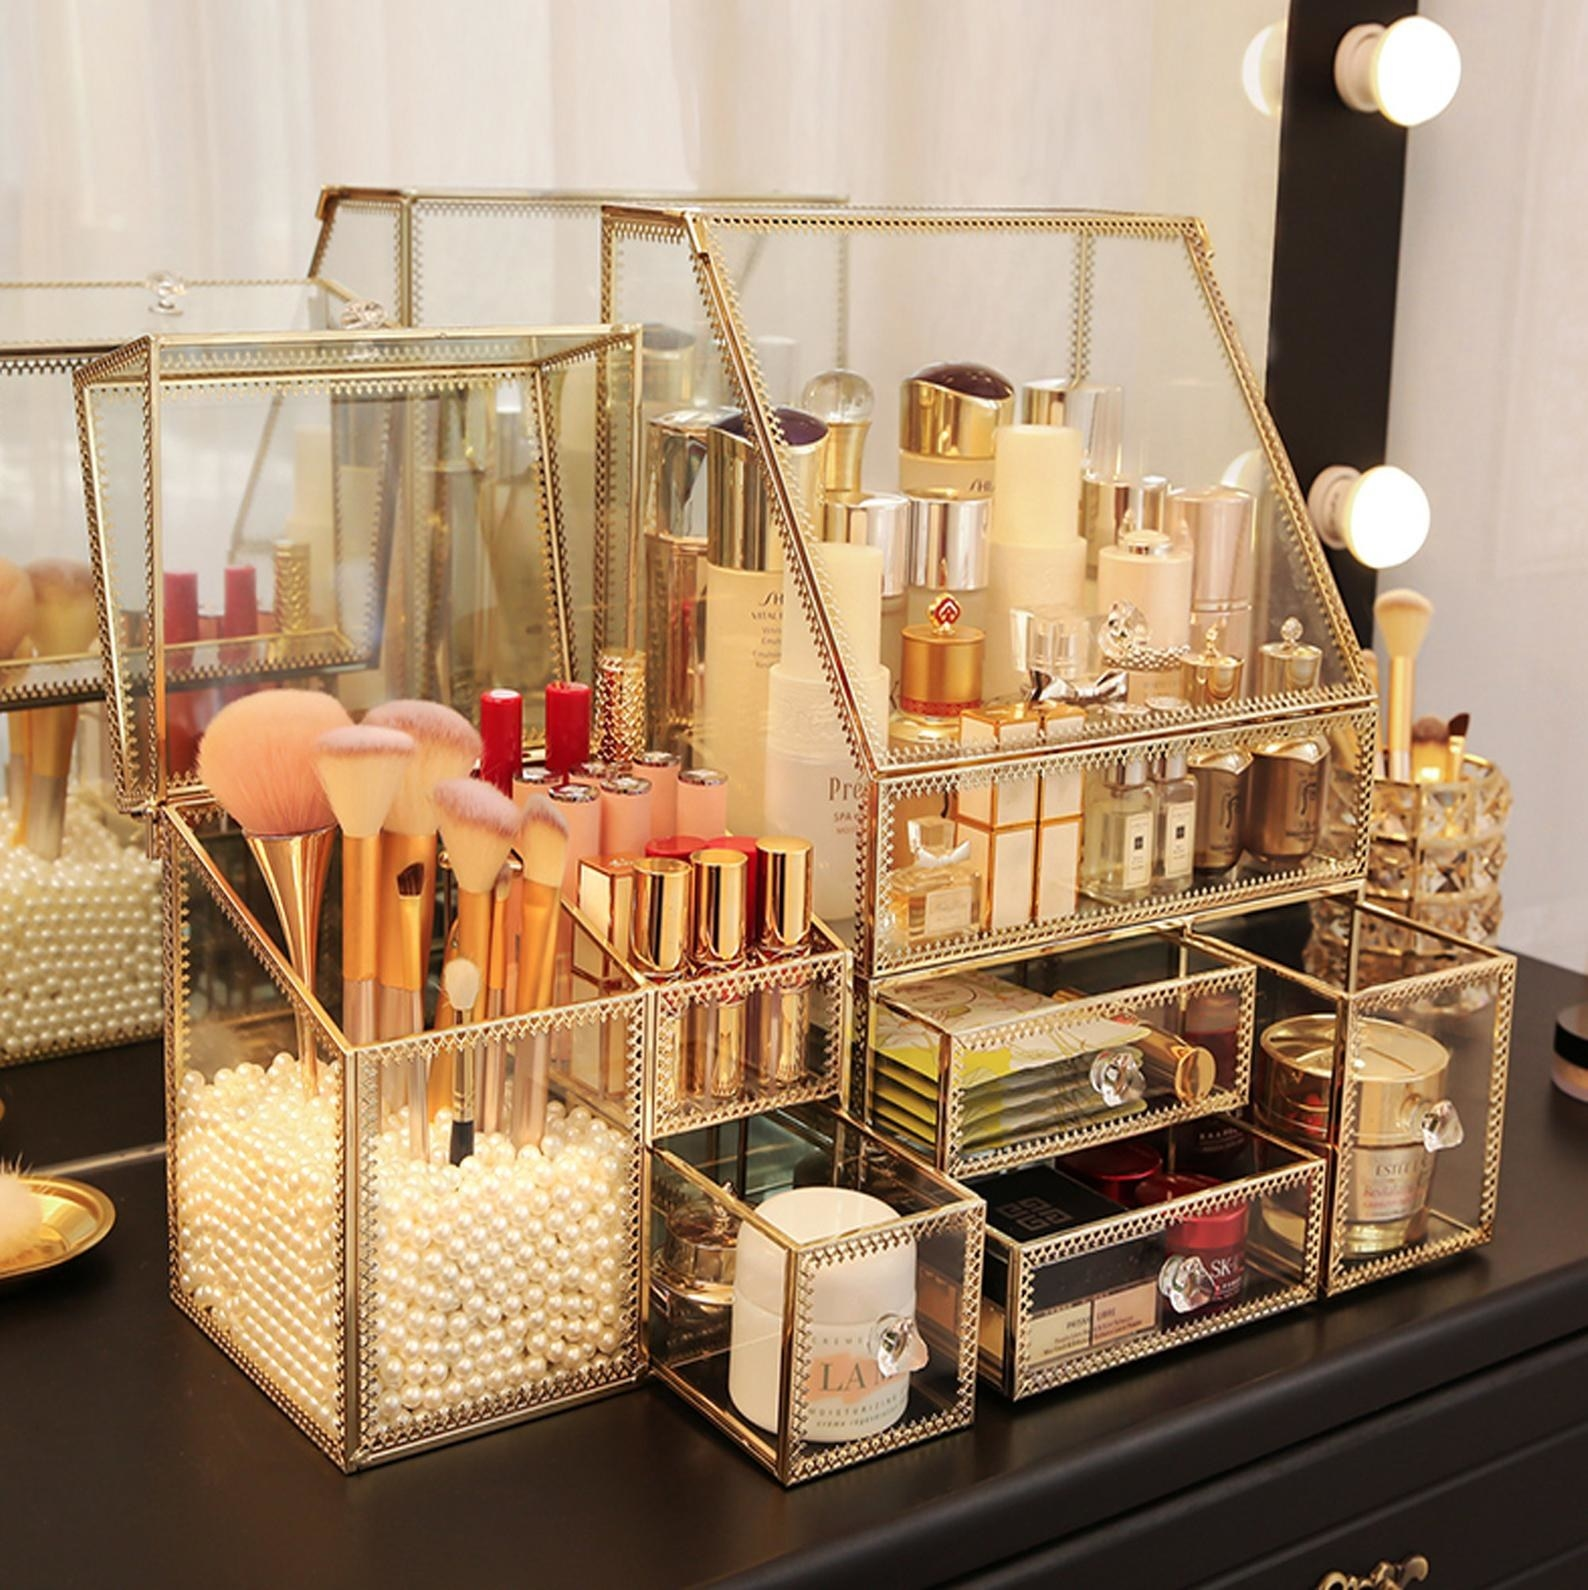 The product with at least 7 sections holding cosmetics